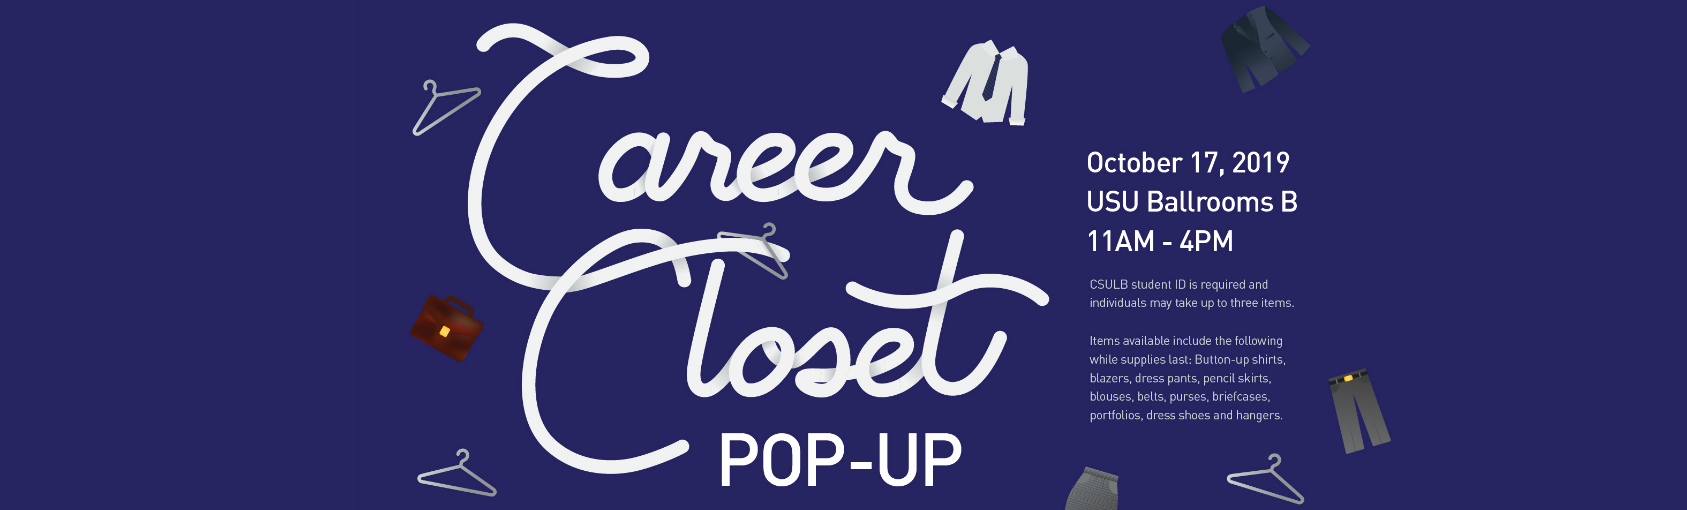 Career Closet Pop-Up on Oct 17 at USU Ballrooms B Banner